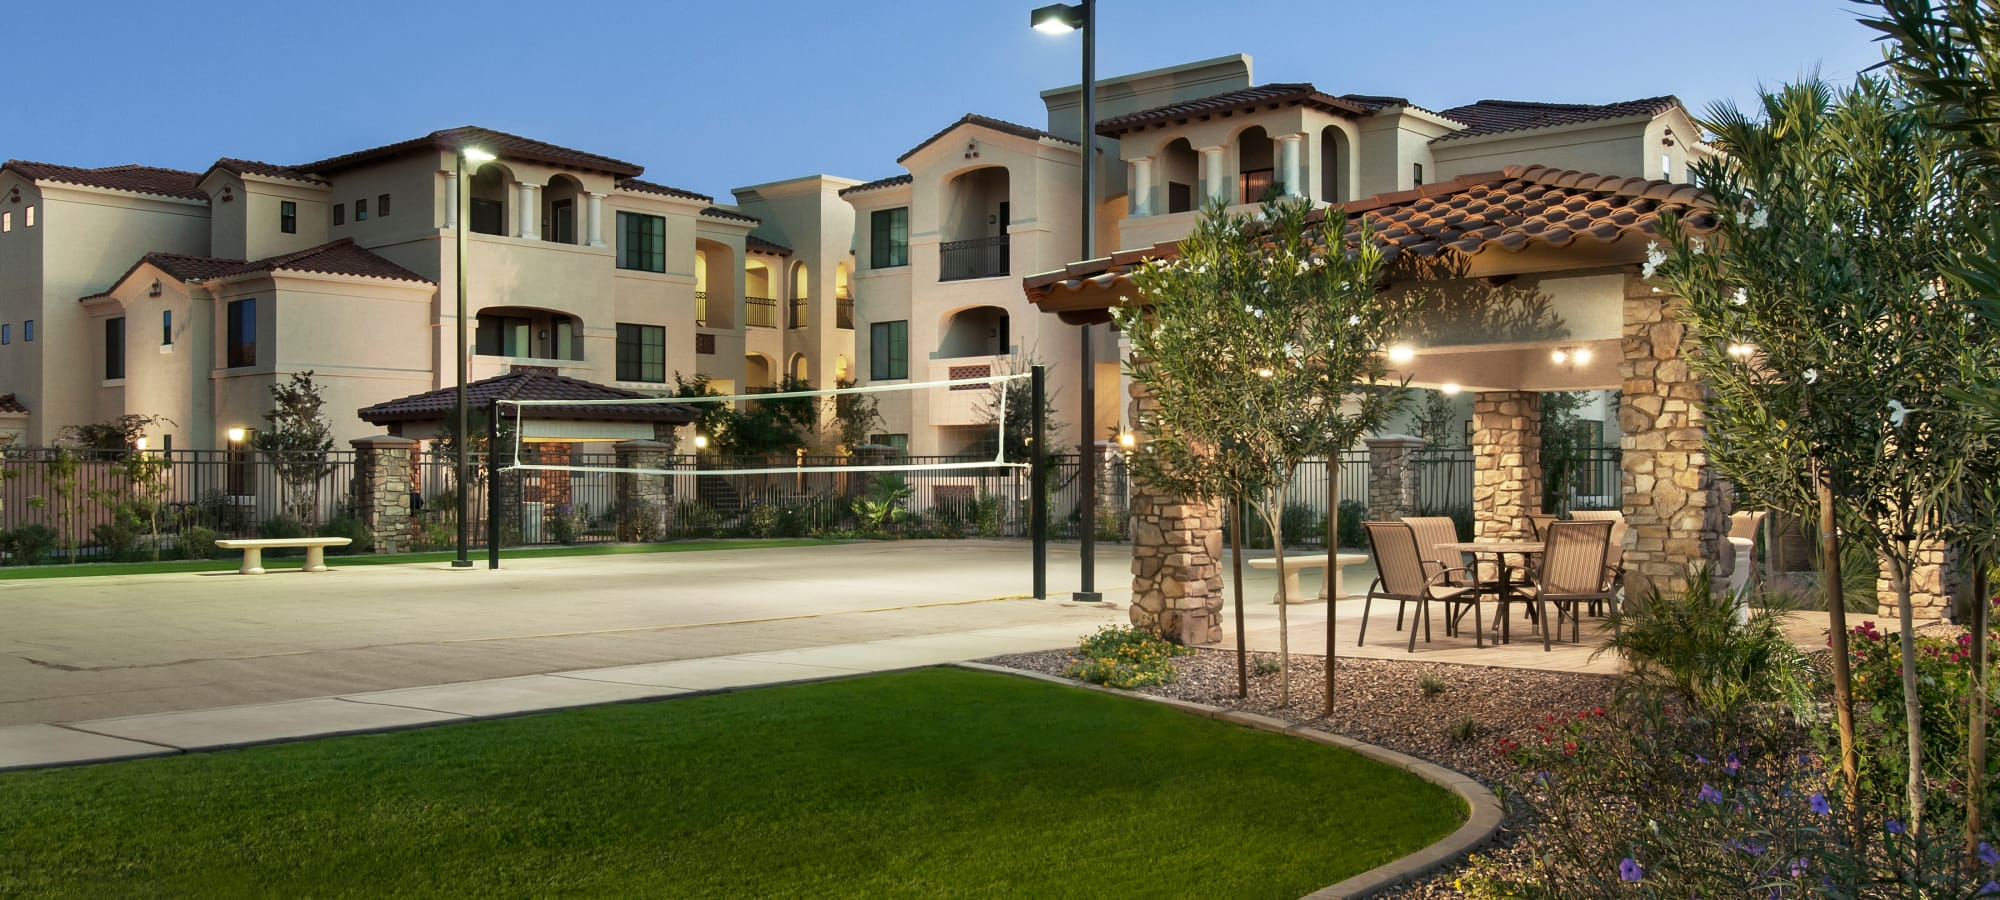 Luxury volleyball court at San Privada in Gilbert, Arizona